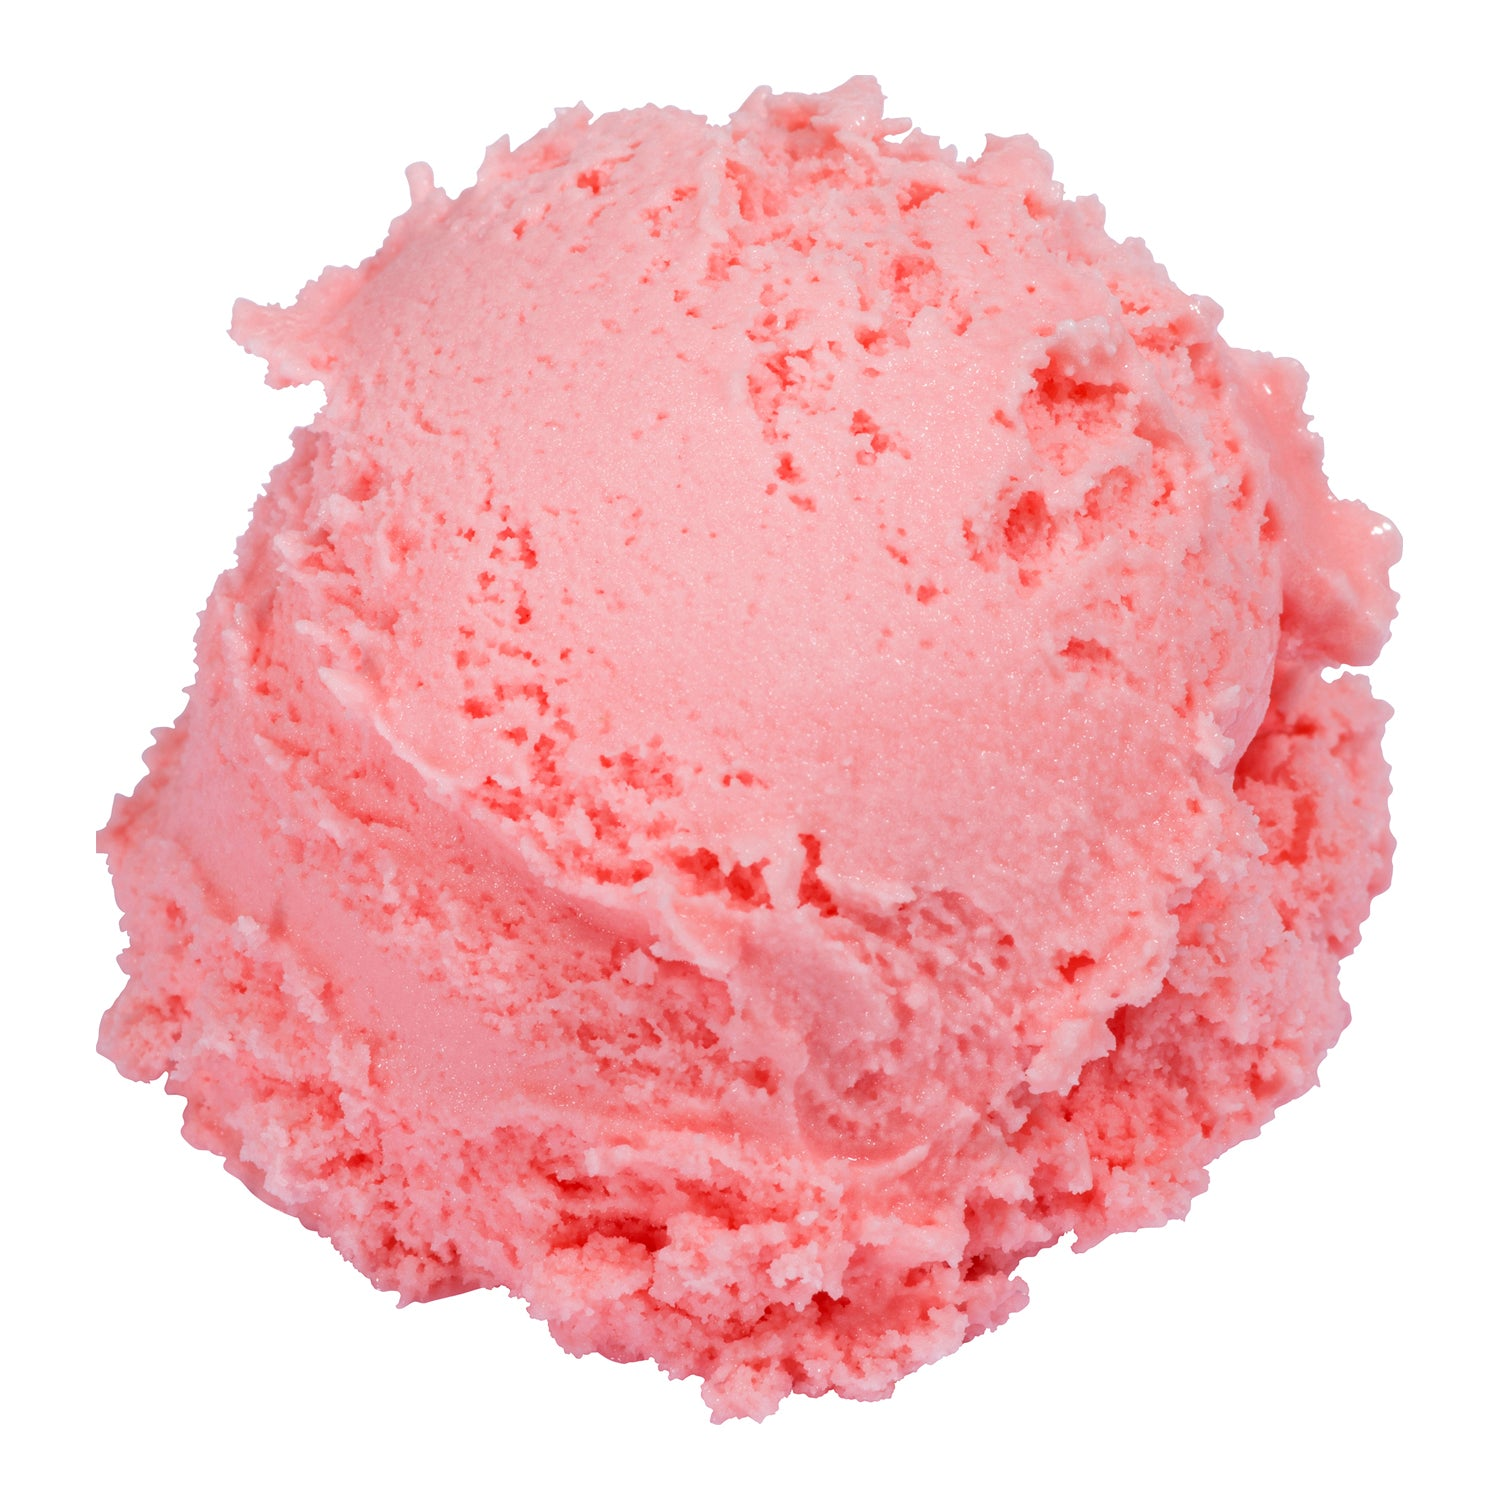 Wholesome Farms Strawberry Ice Cream Cup 115 ml - 48 Pack [$0.46/cup]